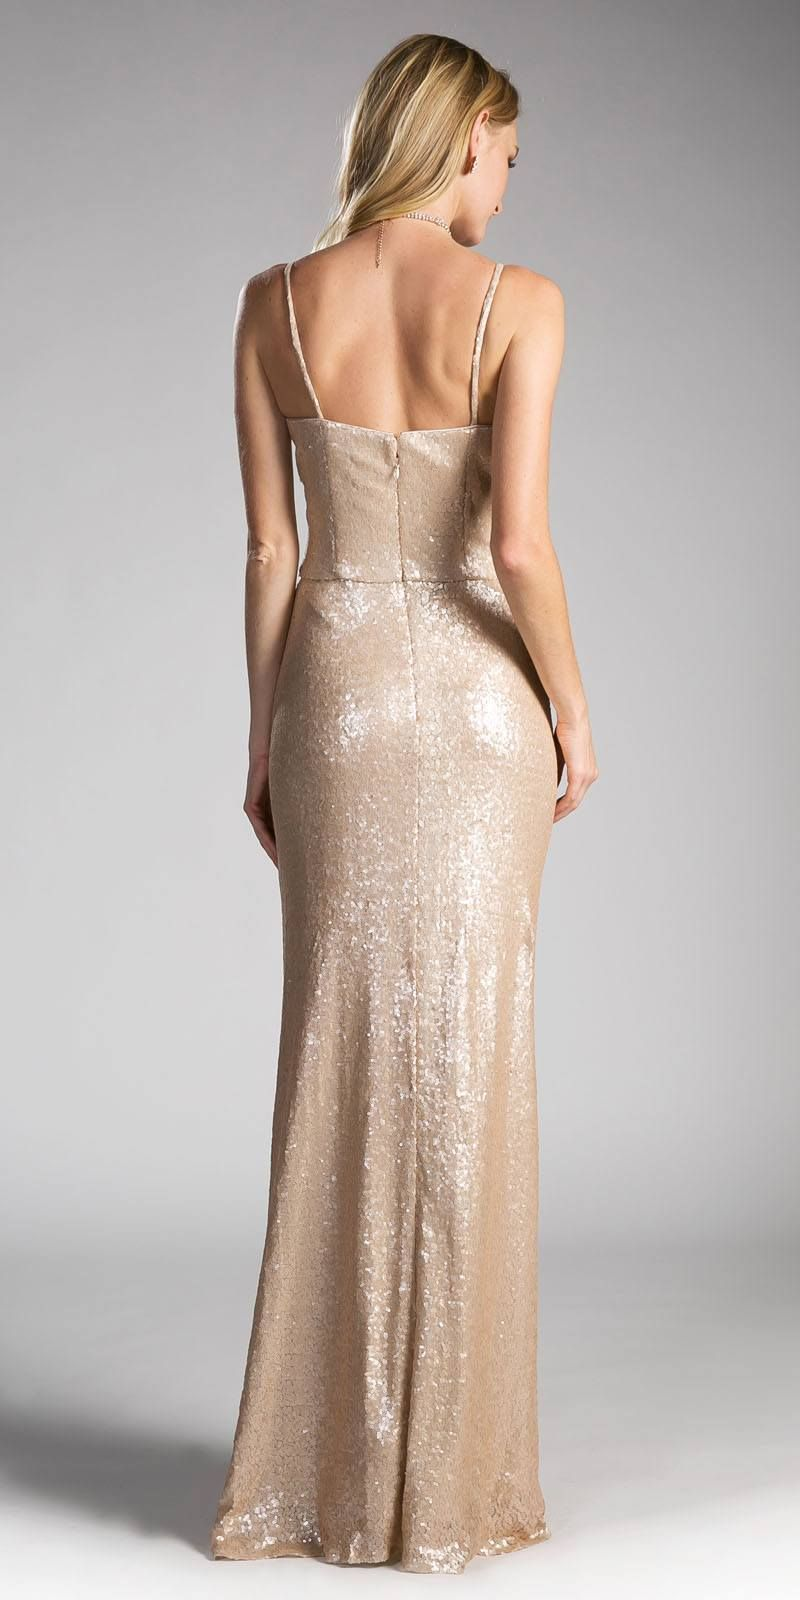 Champagne sequins long prom dress sweetheart neckline long prom